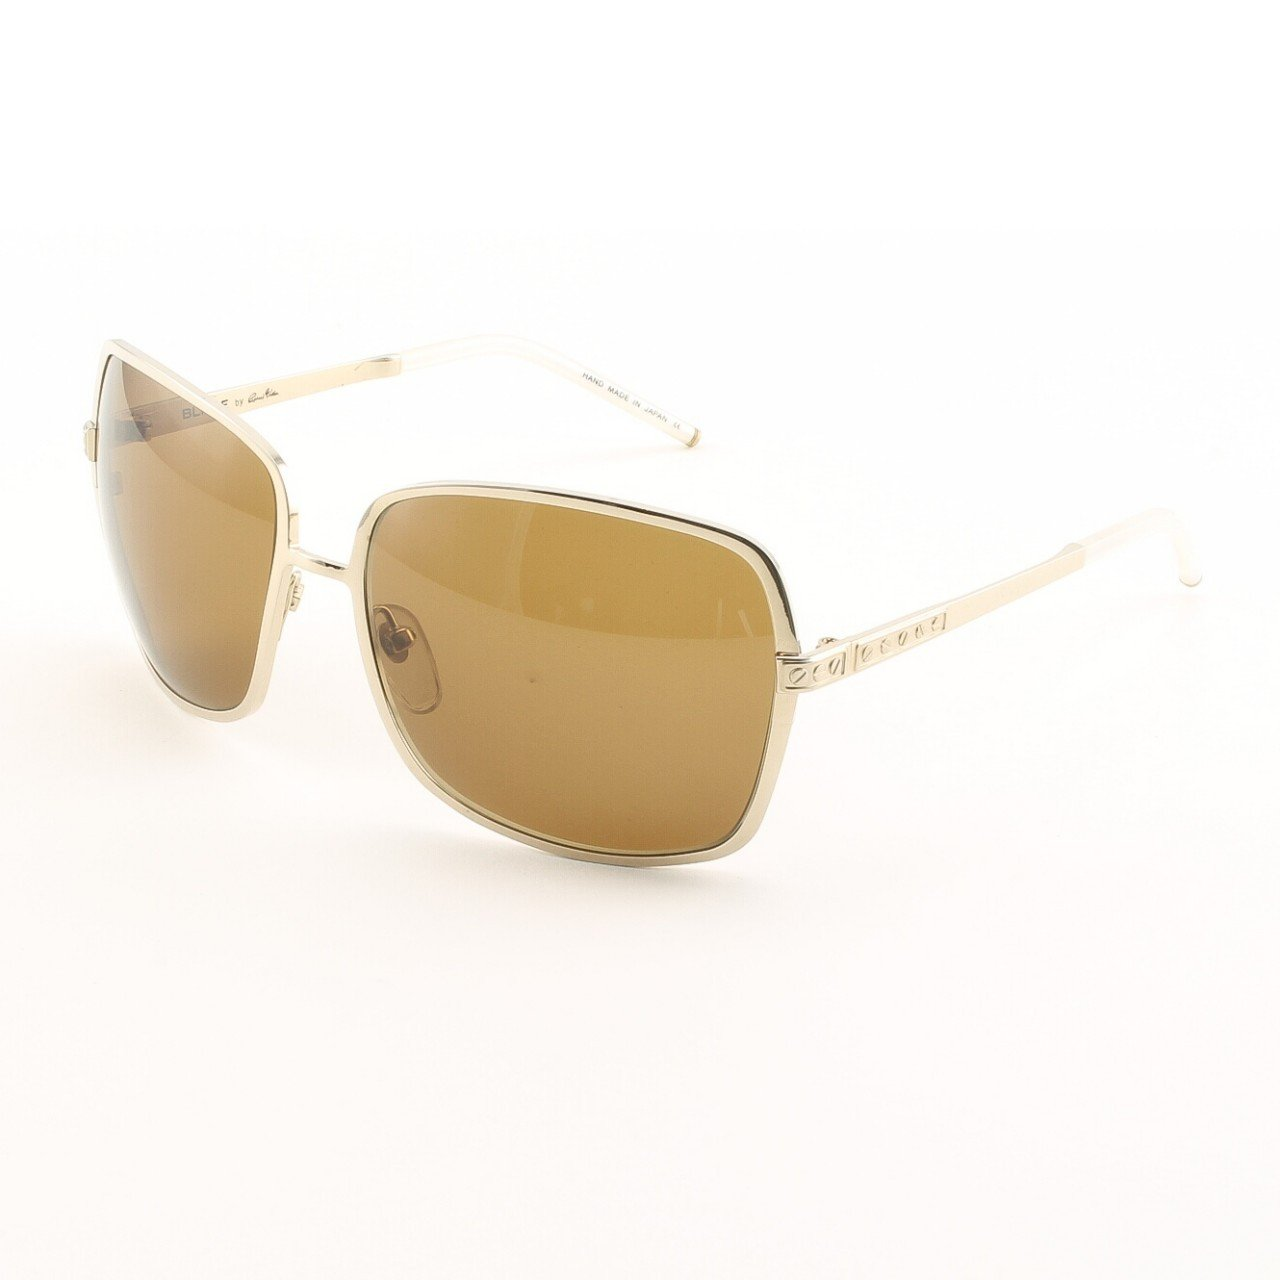 Blnde Me Me Me Women's Sunglasses Col. Gold with Brown Lenses